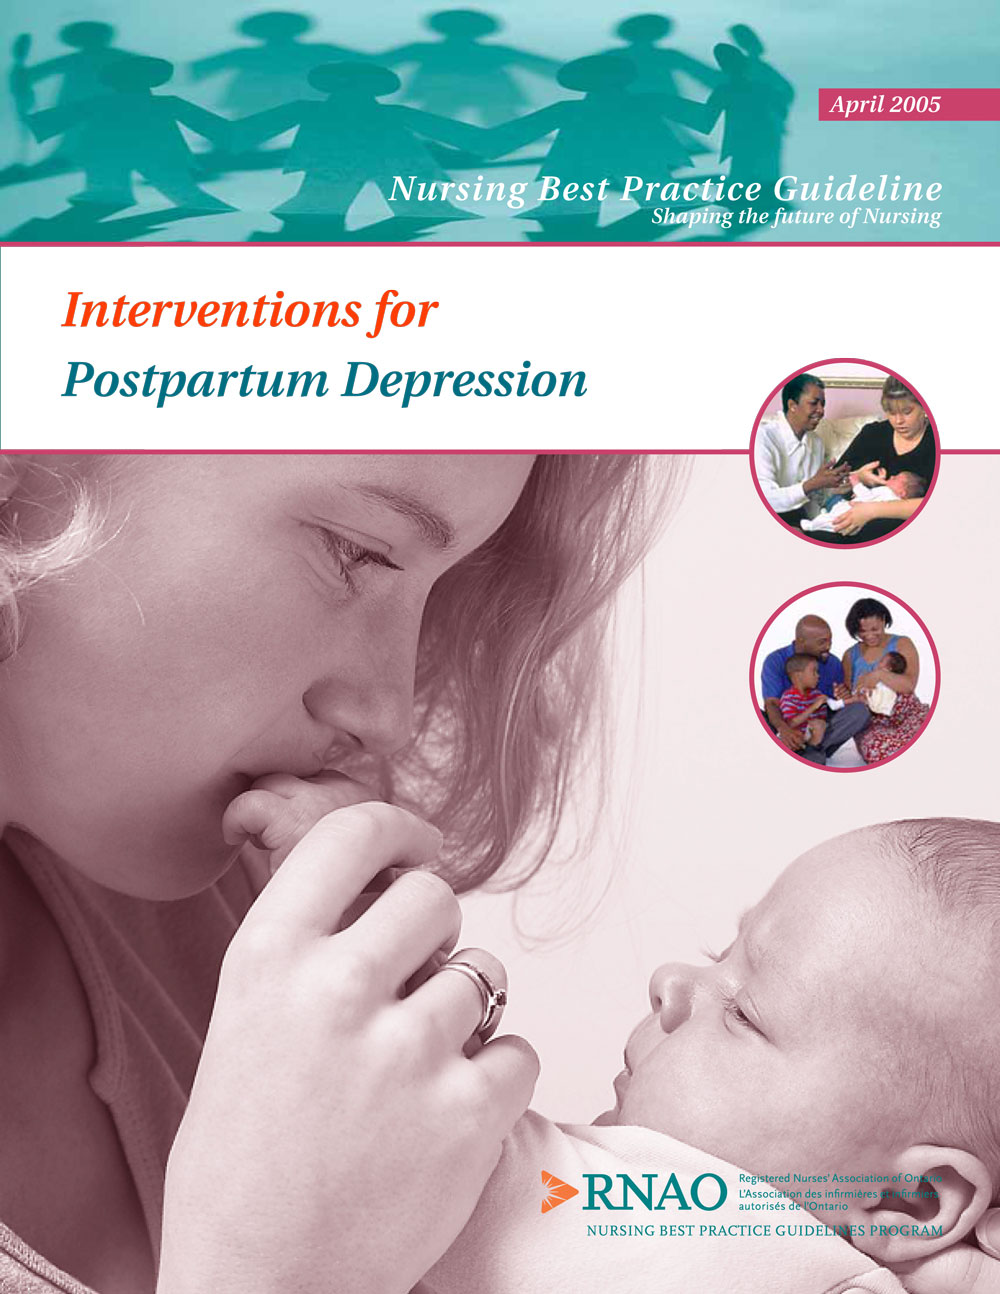 postpartum depression essays Below is an essay on postpartum depression from anti essays, your source for research papers, essays, and term paper examples postpartum depression katie barkley.